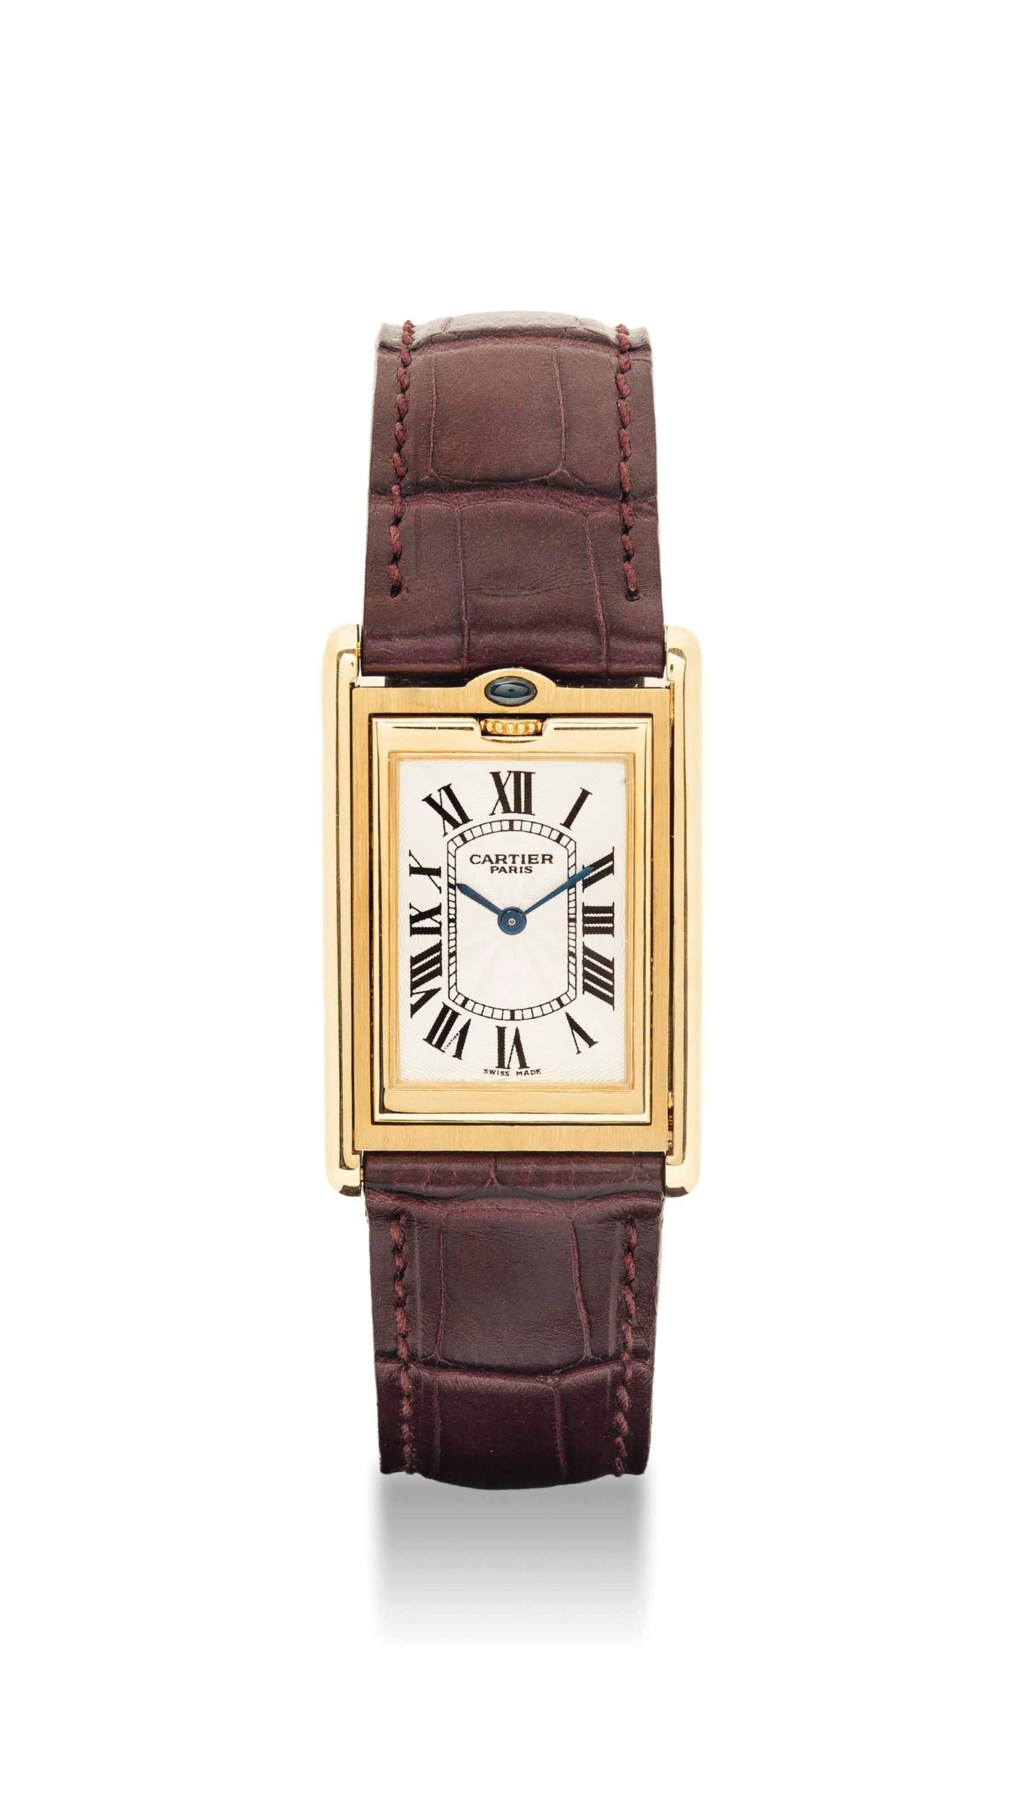 cff0ecd7 CARTIER. A FINE AND UNUSUAL 18K GOLD AND SAPPHIRE-SET RECTAN